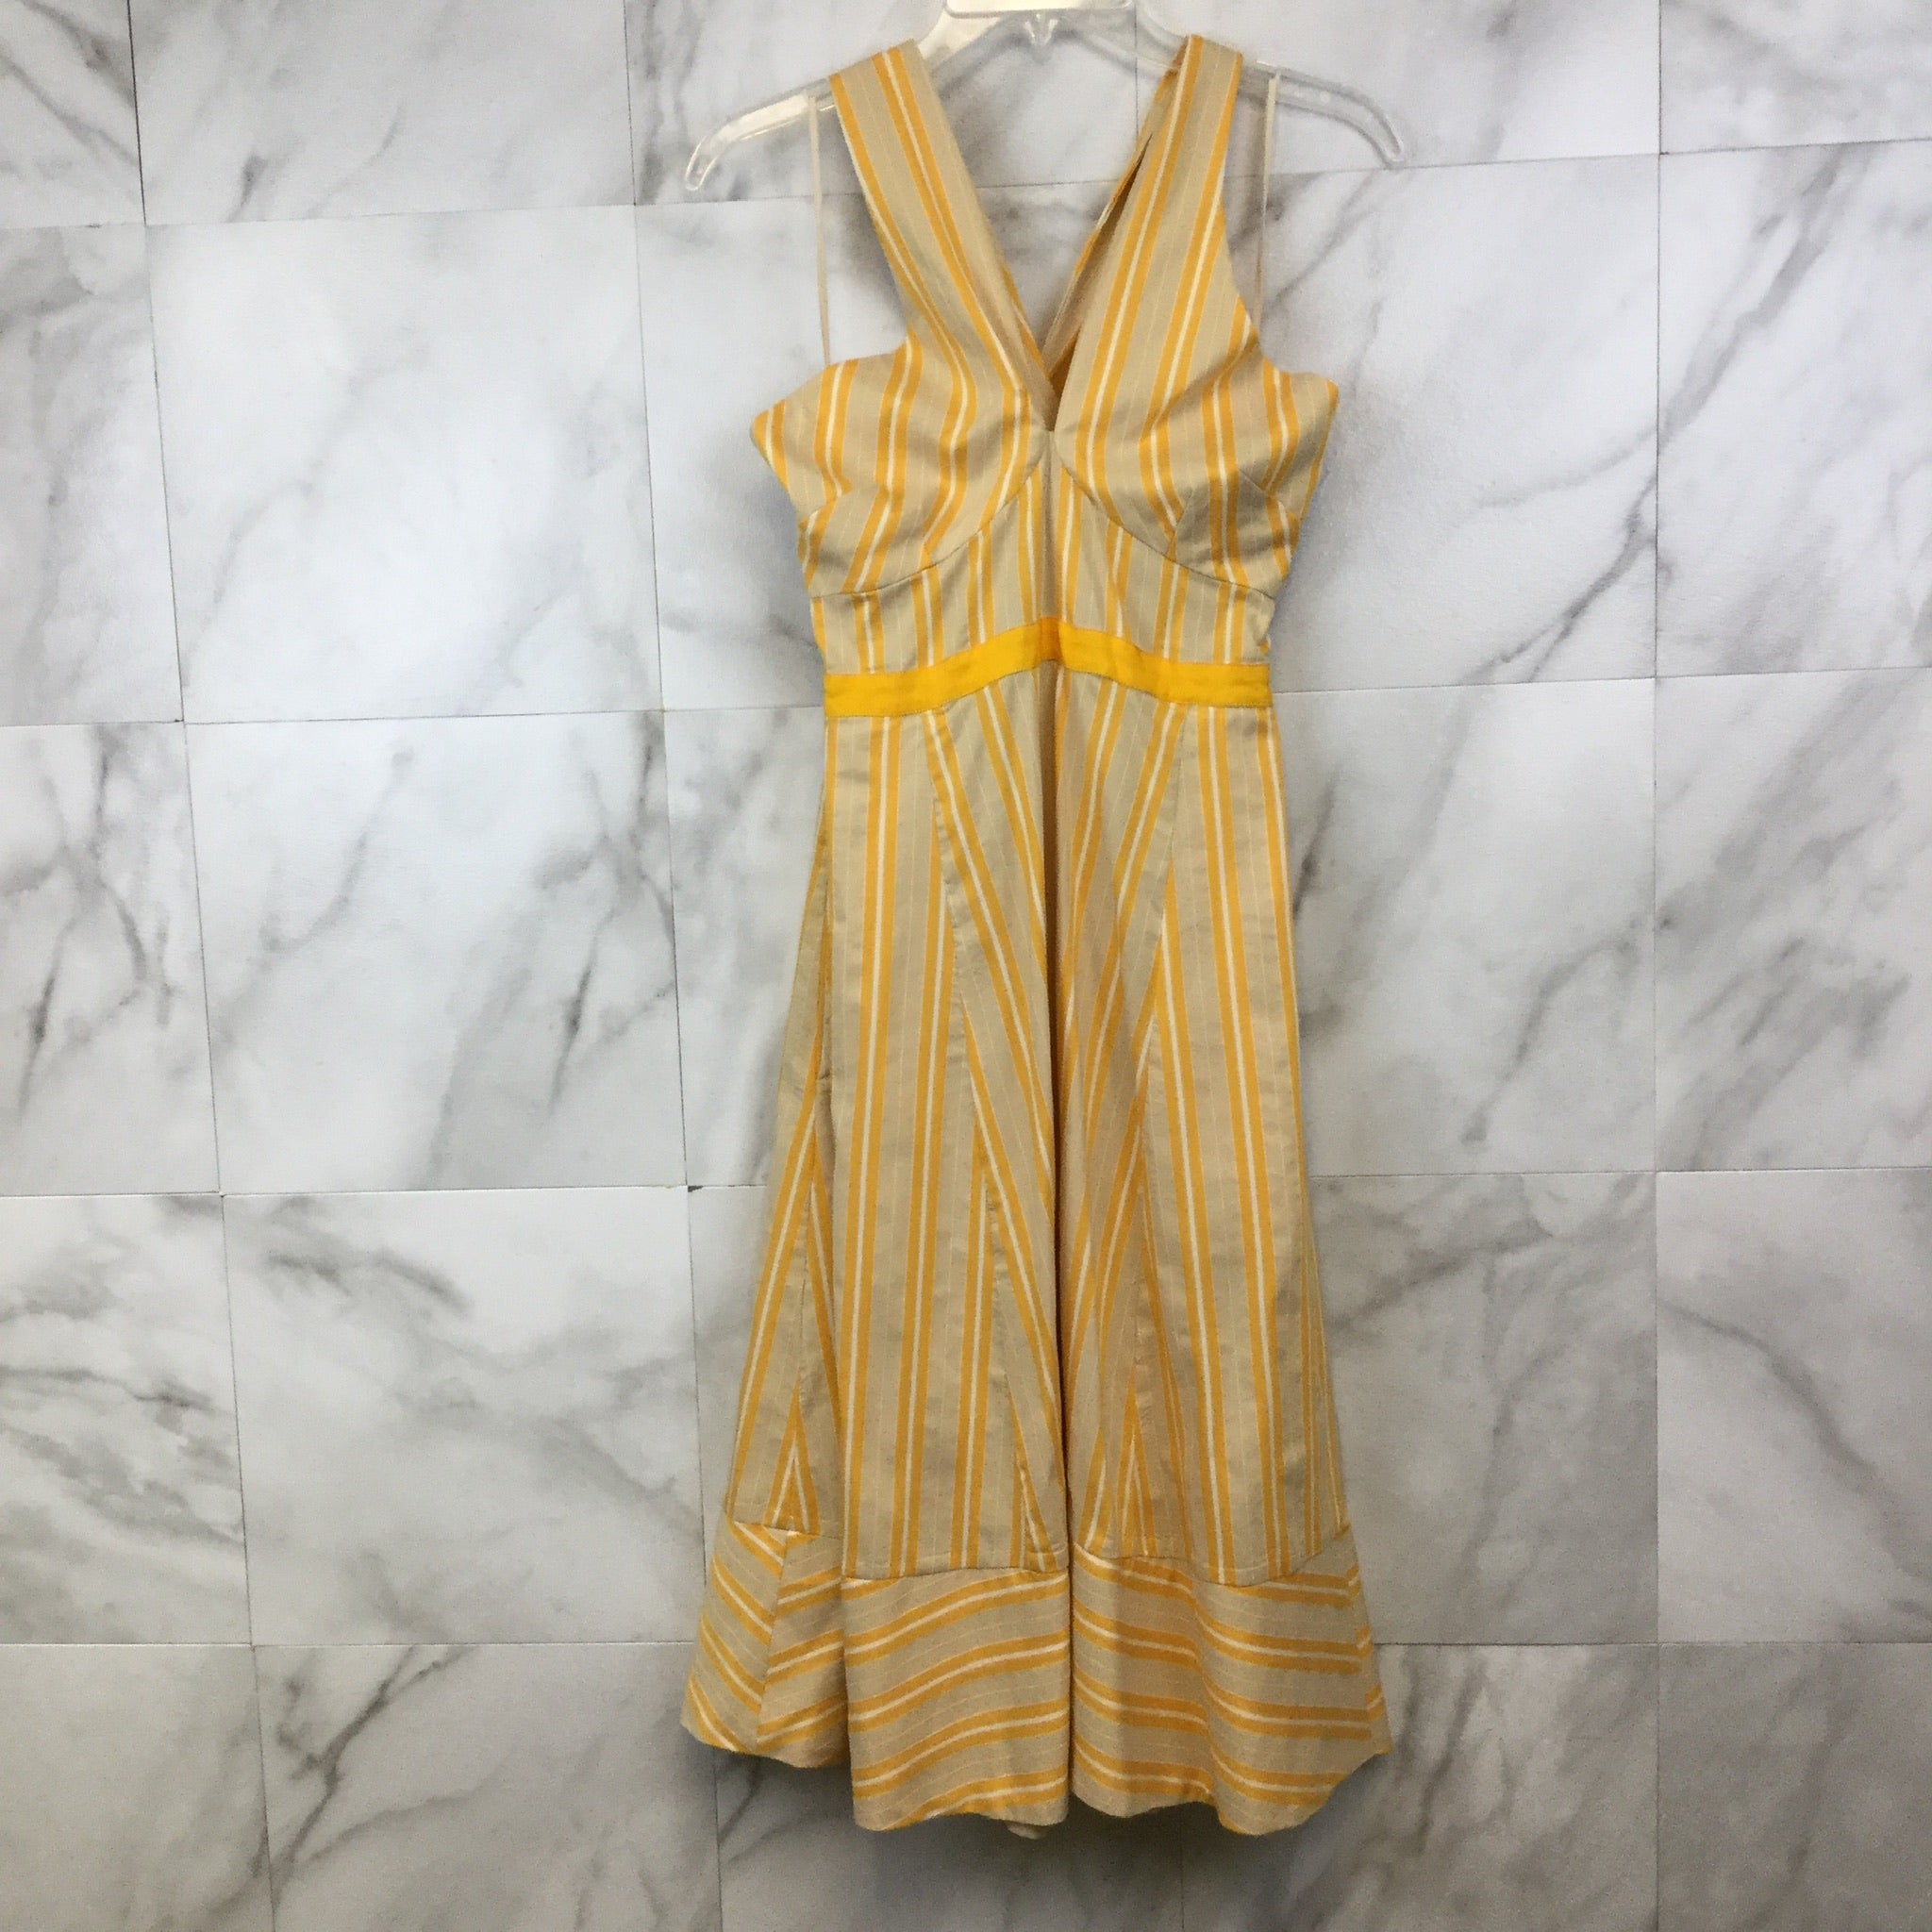 Anthropologie HD in Paris Asbury Park Dress - size 8